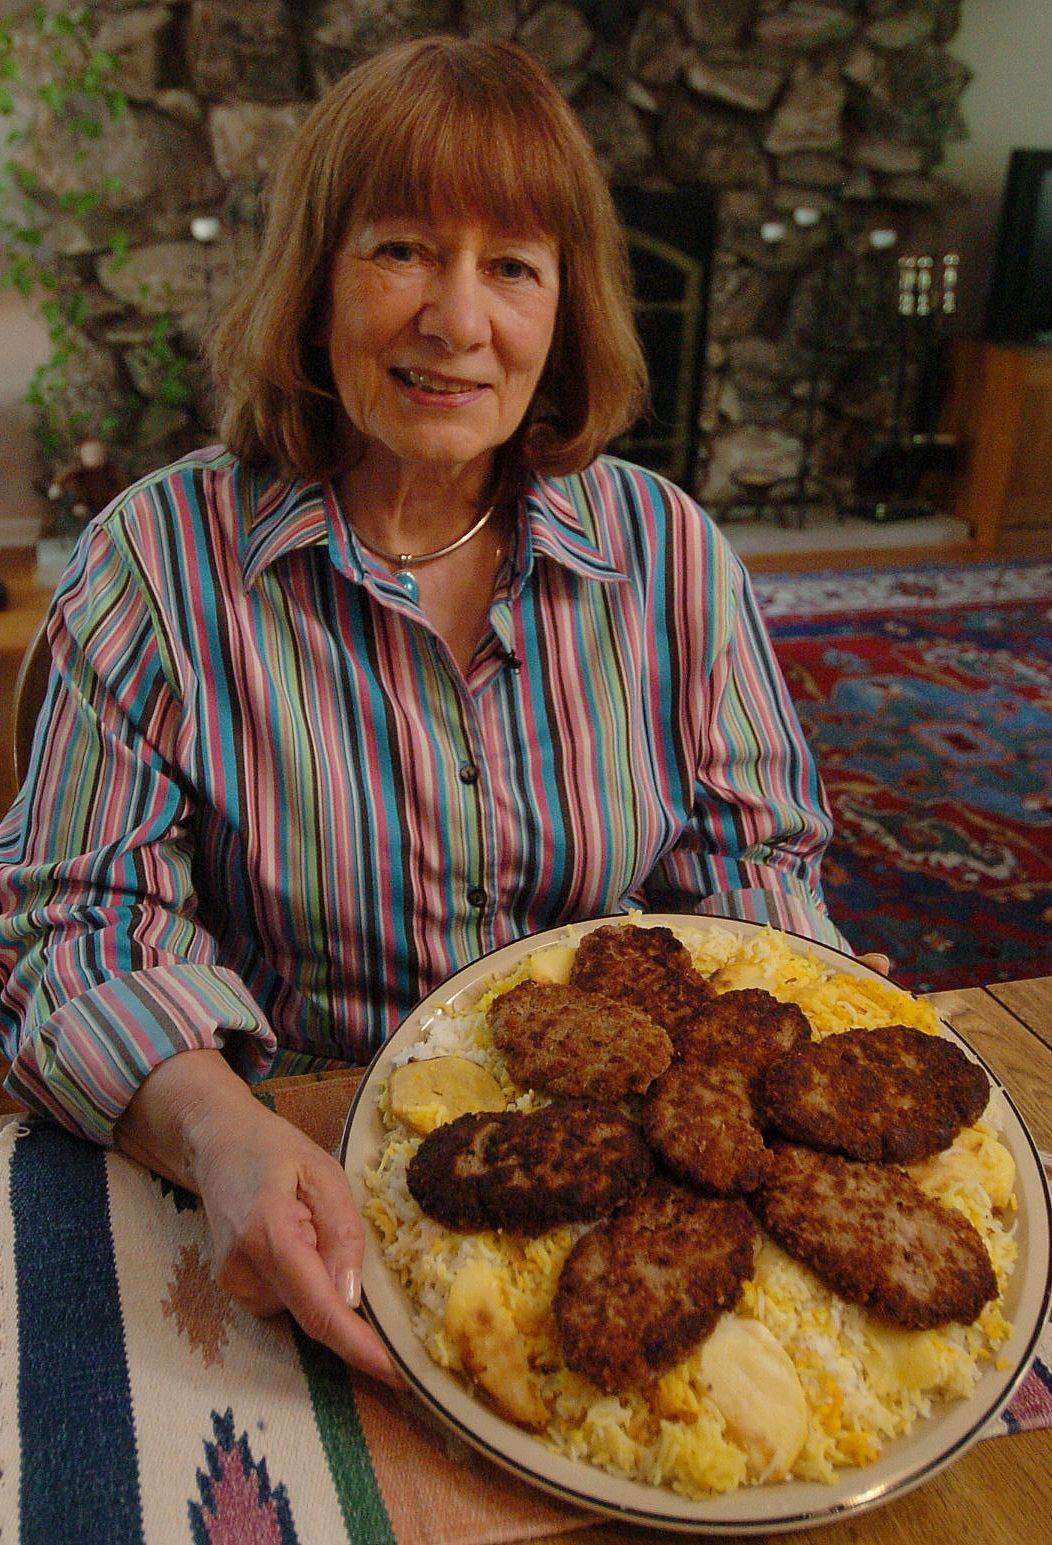 Over the years Marion Behzad has learned to adapt recipes and substitute ingredients when making some of her husband's favorite Persian dishes, like these ground meat patties.